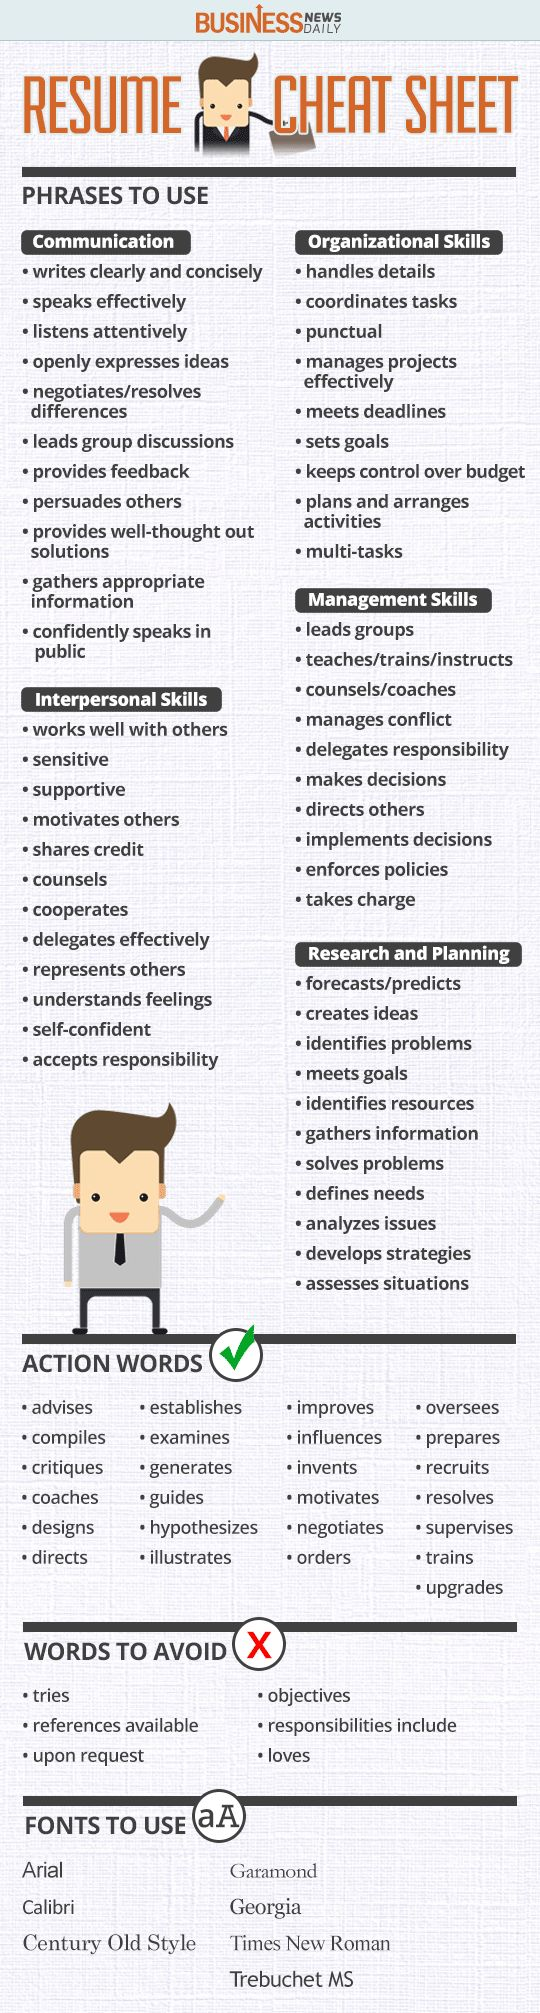 Opposenewapstandardsus  Unusual  Ideas About Resume On Pinterest  Cv Format Resume Cv And  With Engaging Resume Cheat Sheet Infographic Andrews Almost Done With A Complete Unit On Employment Which With Charming Professional Resume Design Also Resume Software Skills In Addition Resume For Construction And Warehouse Job Resume As Well As Great Objectives For Resume Additionally Structural Engineer Resume From Pinterestcom With Opposenewapstandardsus  Engaging  Ideas About Resume On Pinterest  Cv Format Resume Cv And  With Charming Resume Cheat Sheet Infographic Andrews Almost Done With A Complete Unit On Employment Which And Unusual Professional Resume Design Also Resume Software Skills In Addition Resume For Construction From Pinterestcom